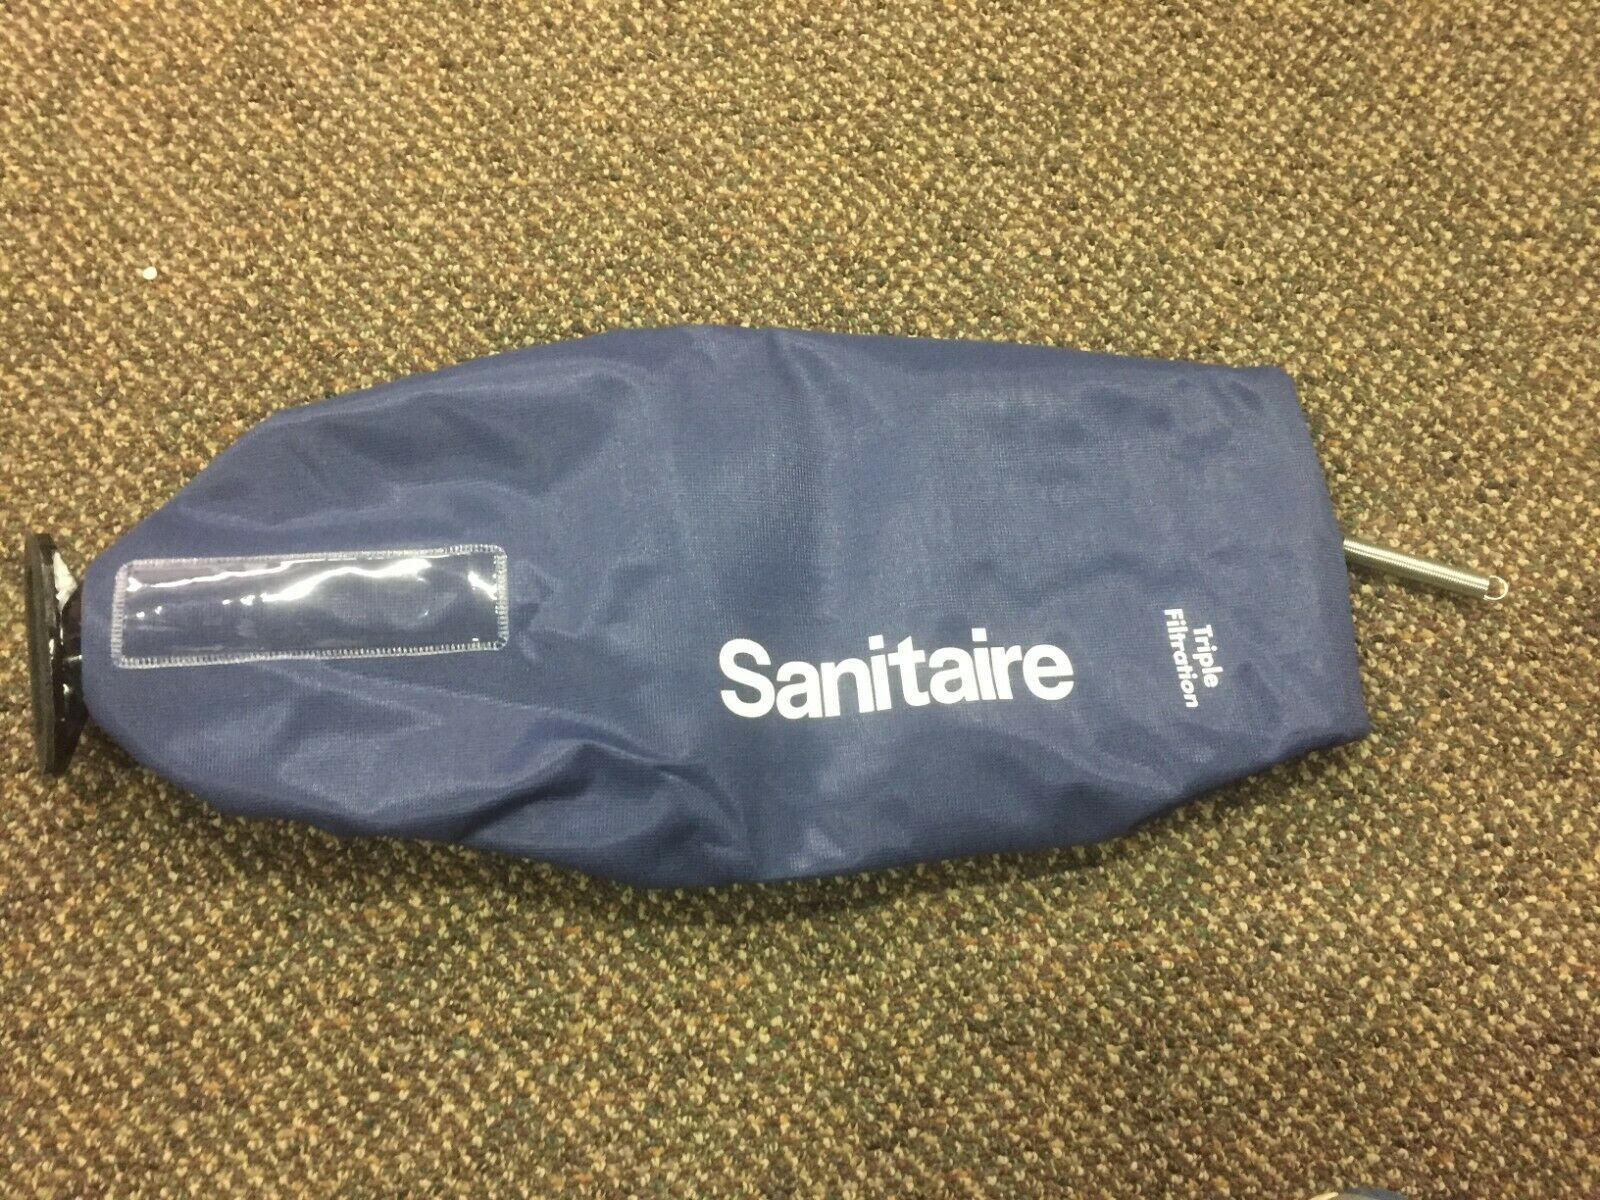 Genuine Outer bag two screws Eureka Sanitaire Kent Powr-Flite F&G bag 53977-29